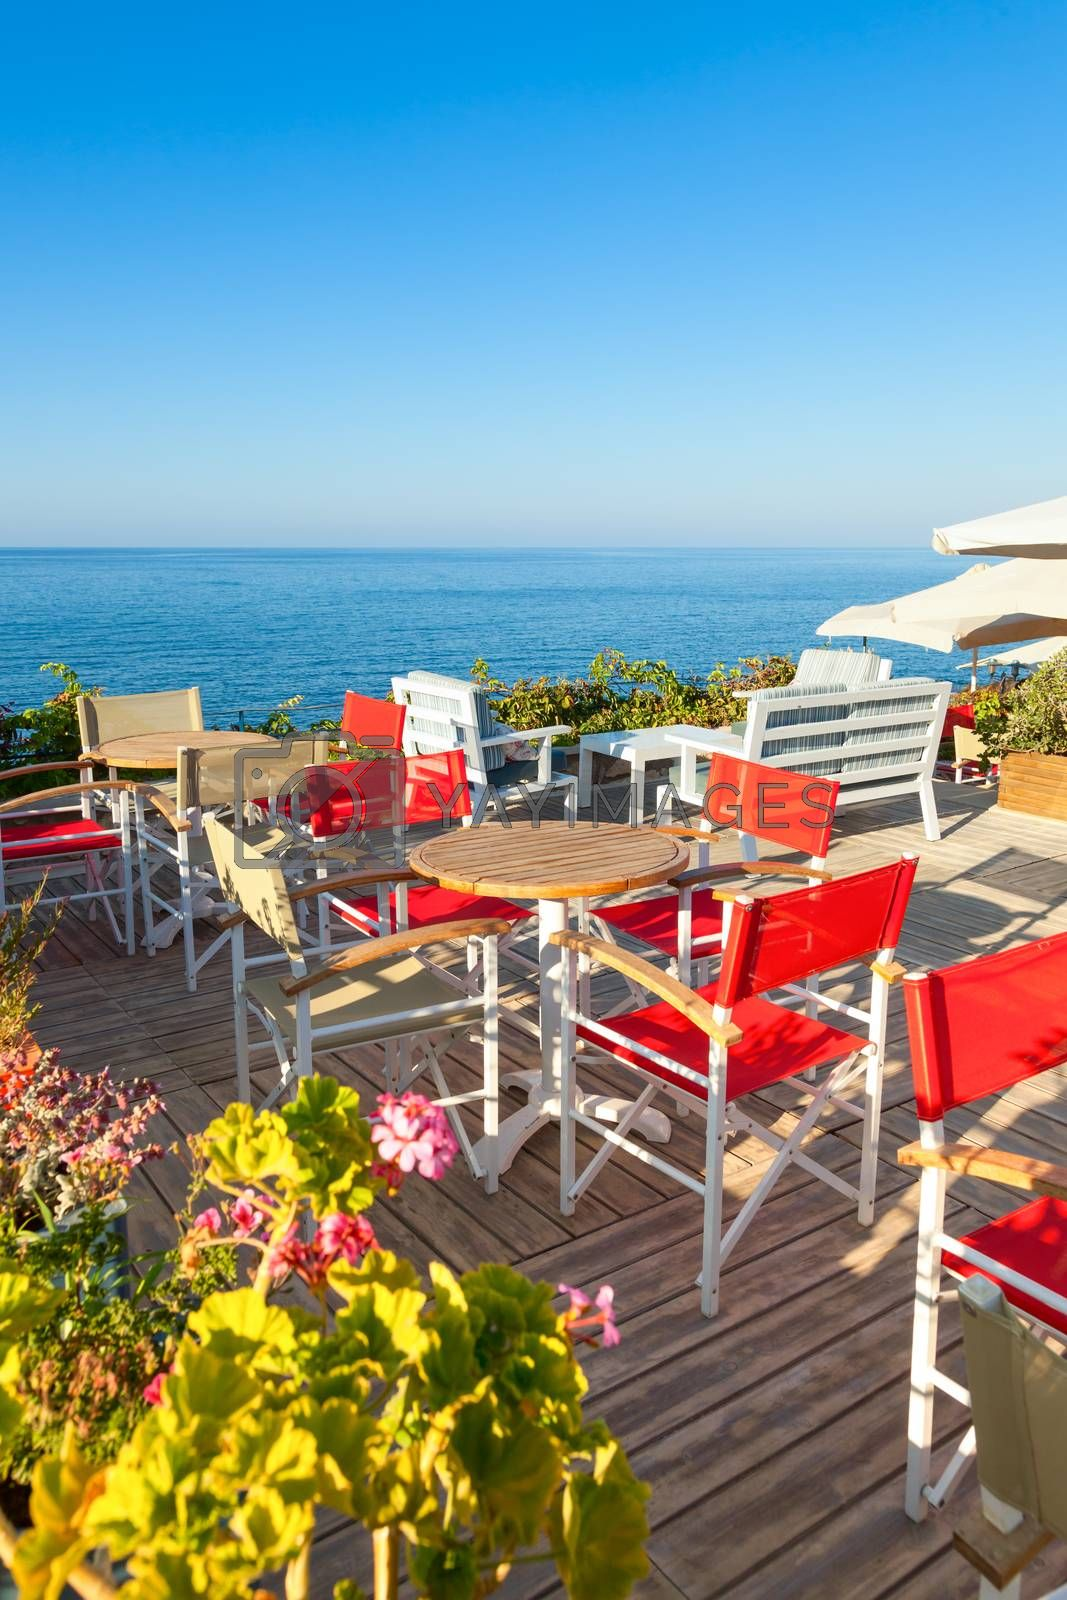 Open-air greek cafe  terrace overlooking the sea